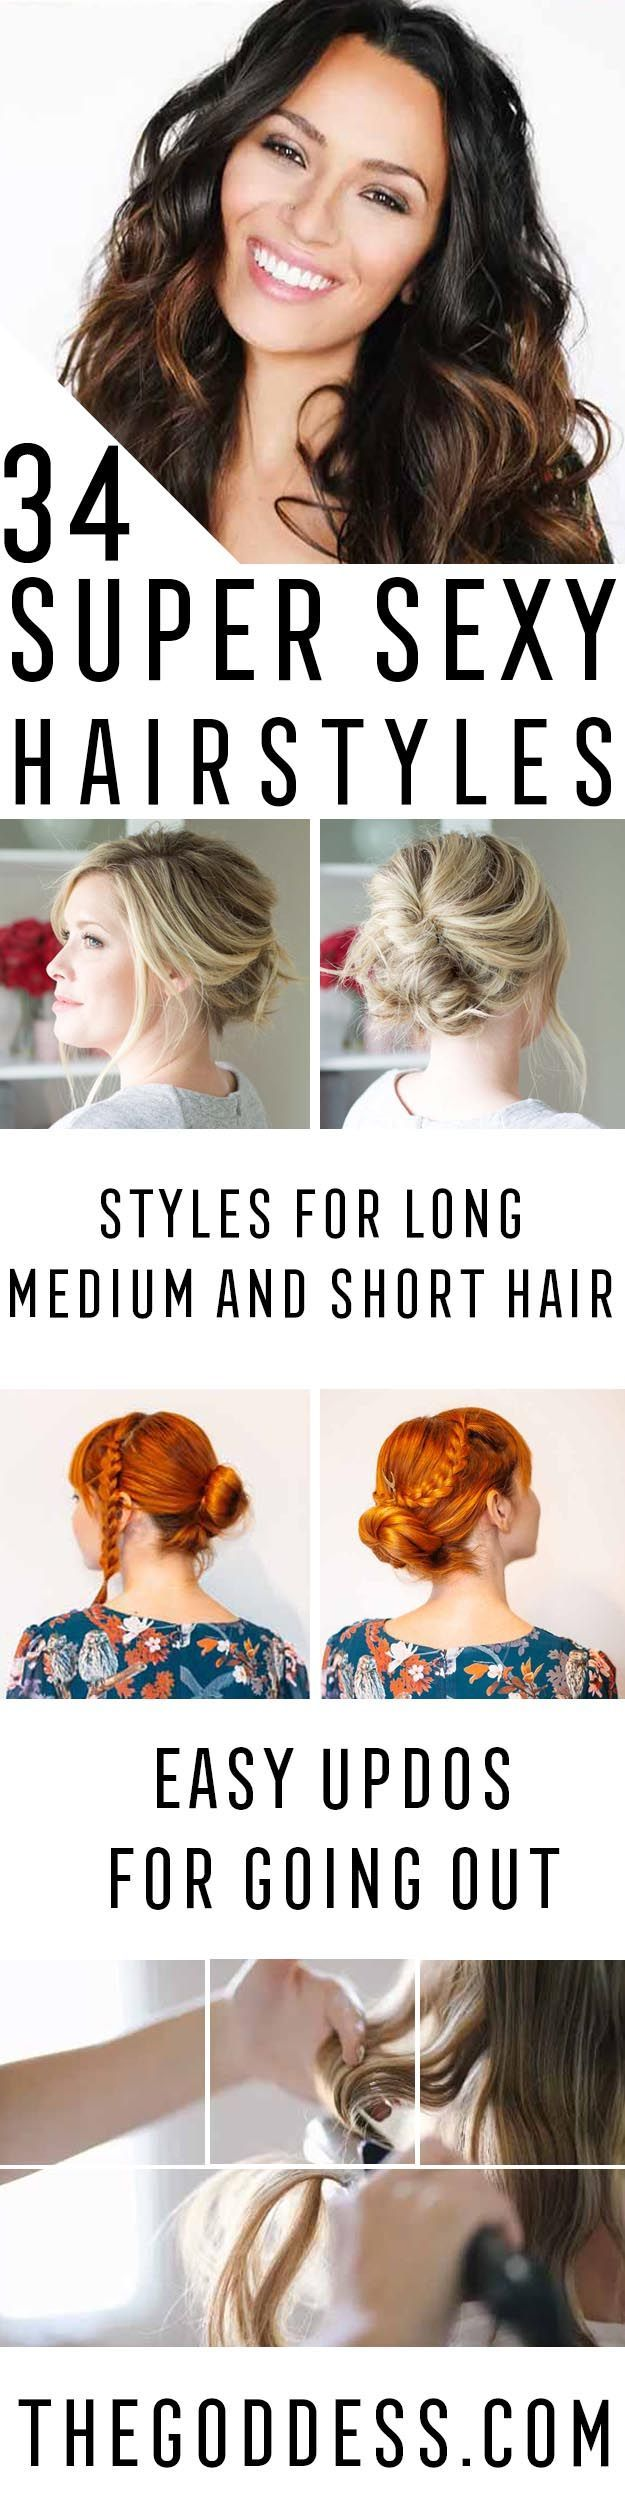 Super Sexy Hairstyles - Easy Hair Styles For Long Hair, Medium Hair, And For Goi...